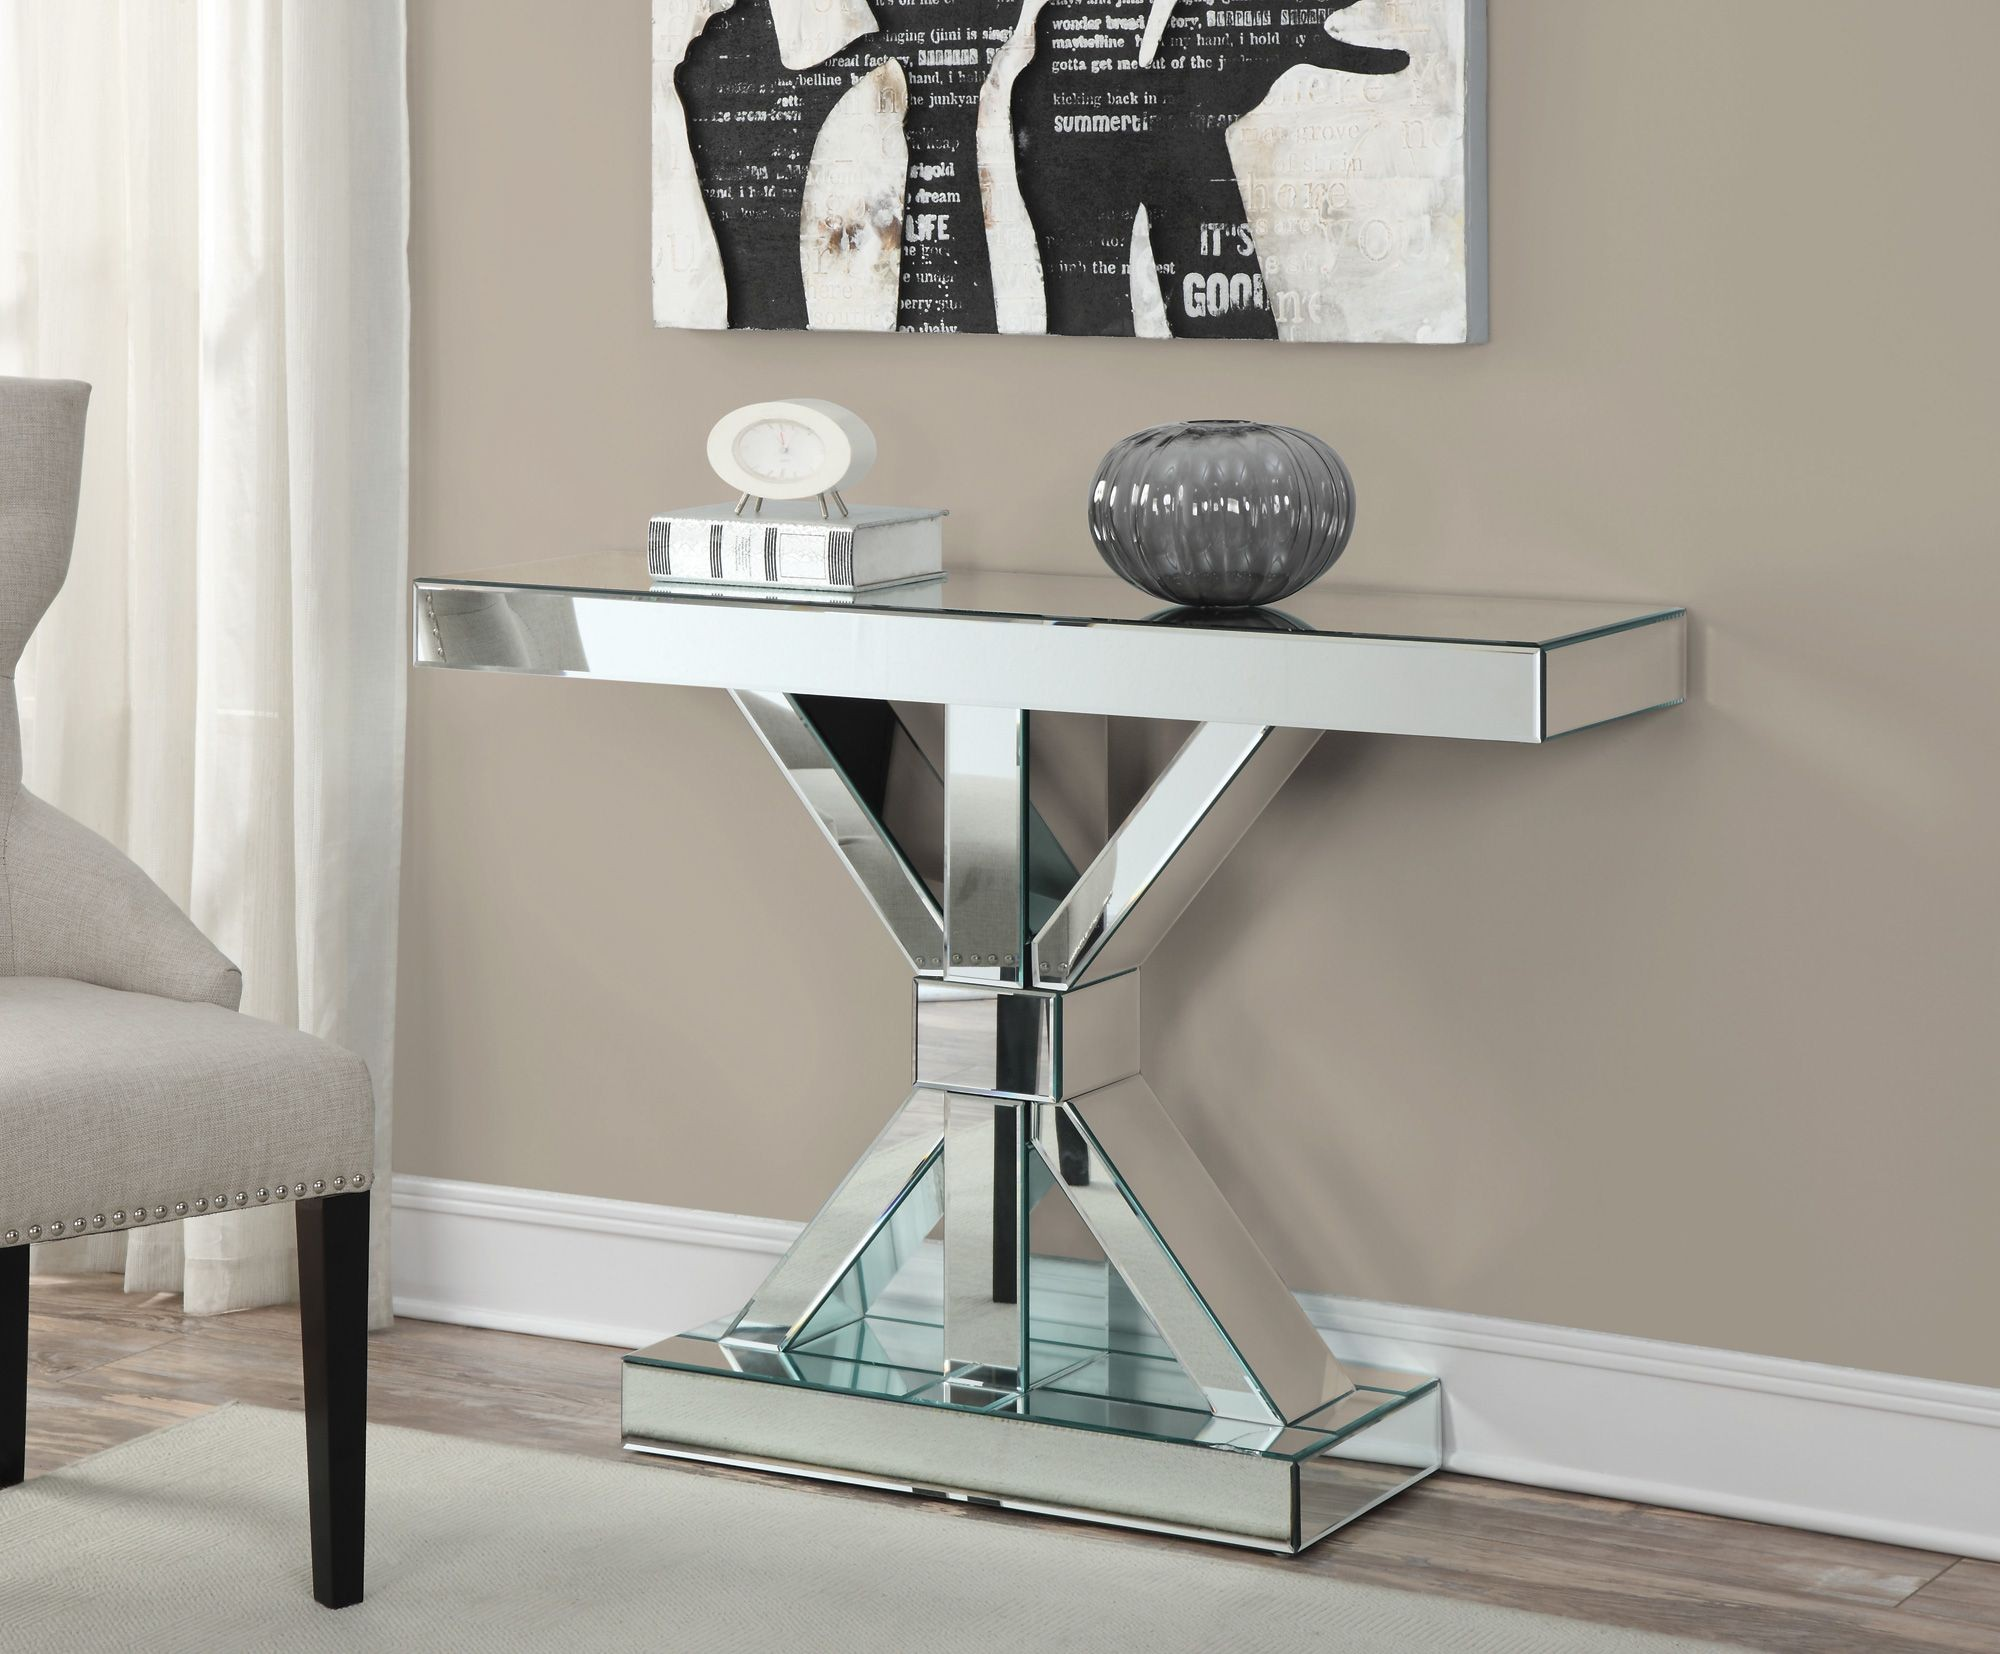 vogue chrome sofa table ottoman bed harvey norman 950191 console from coaster